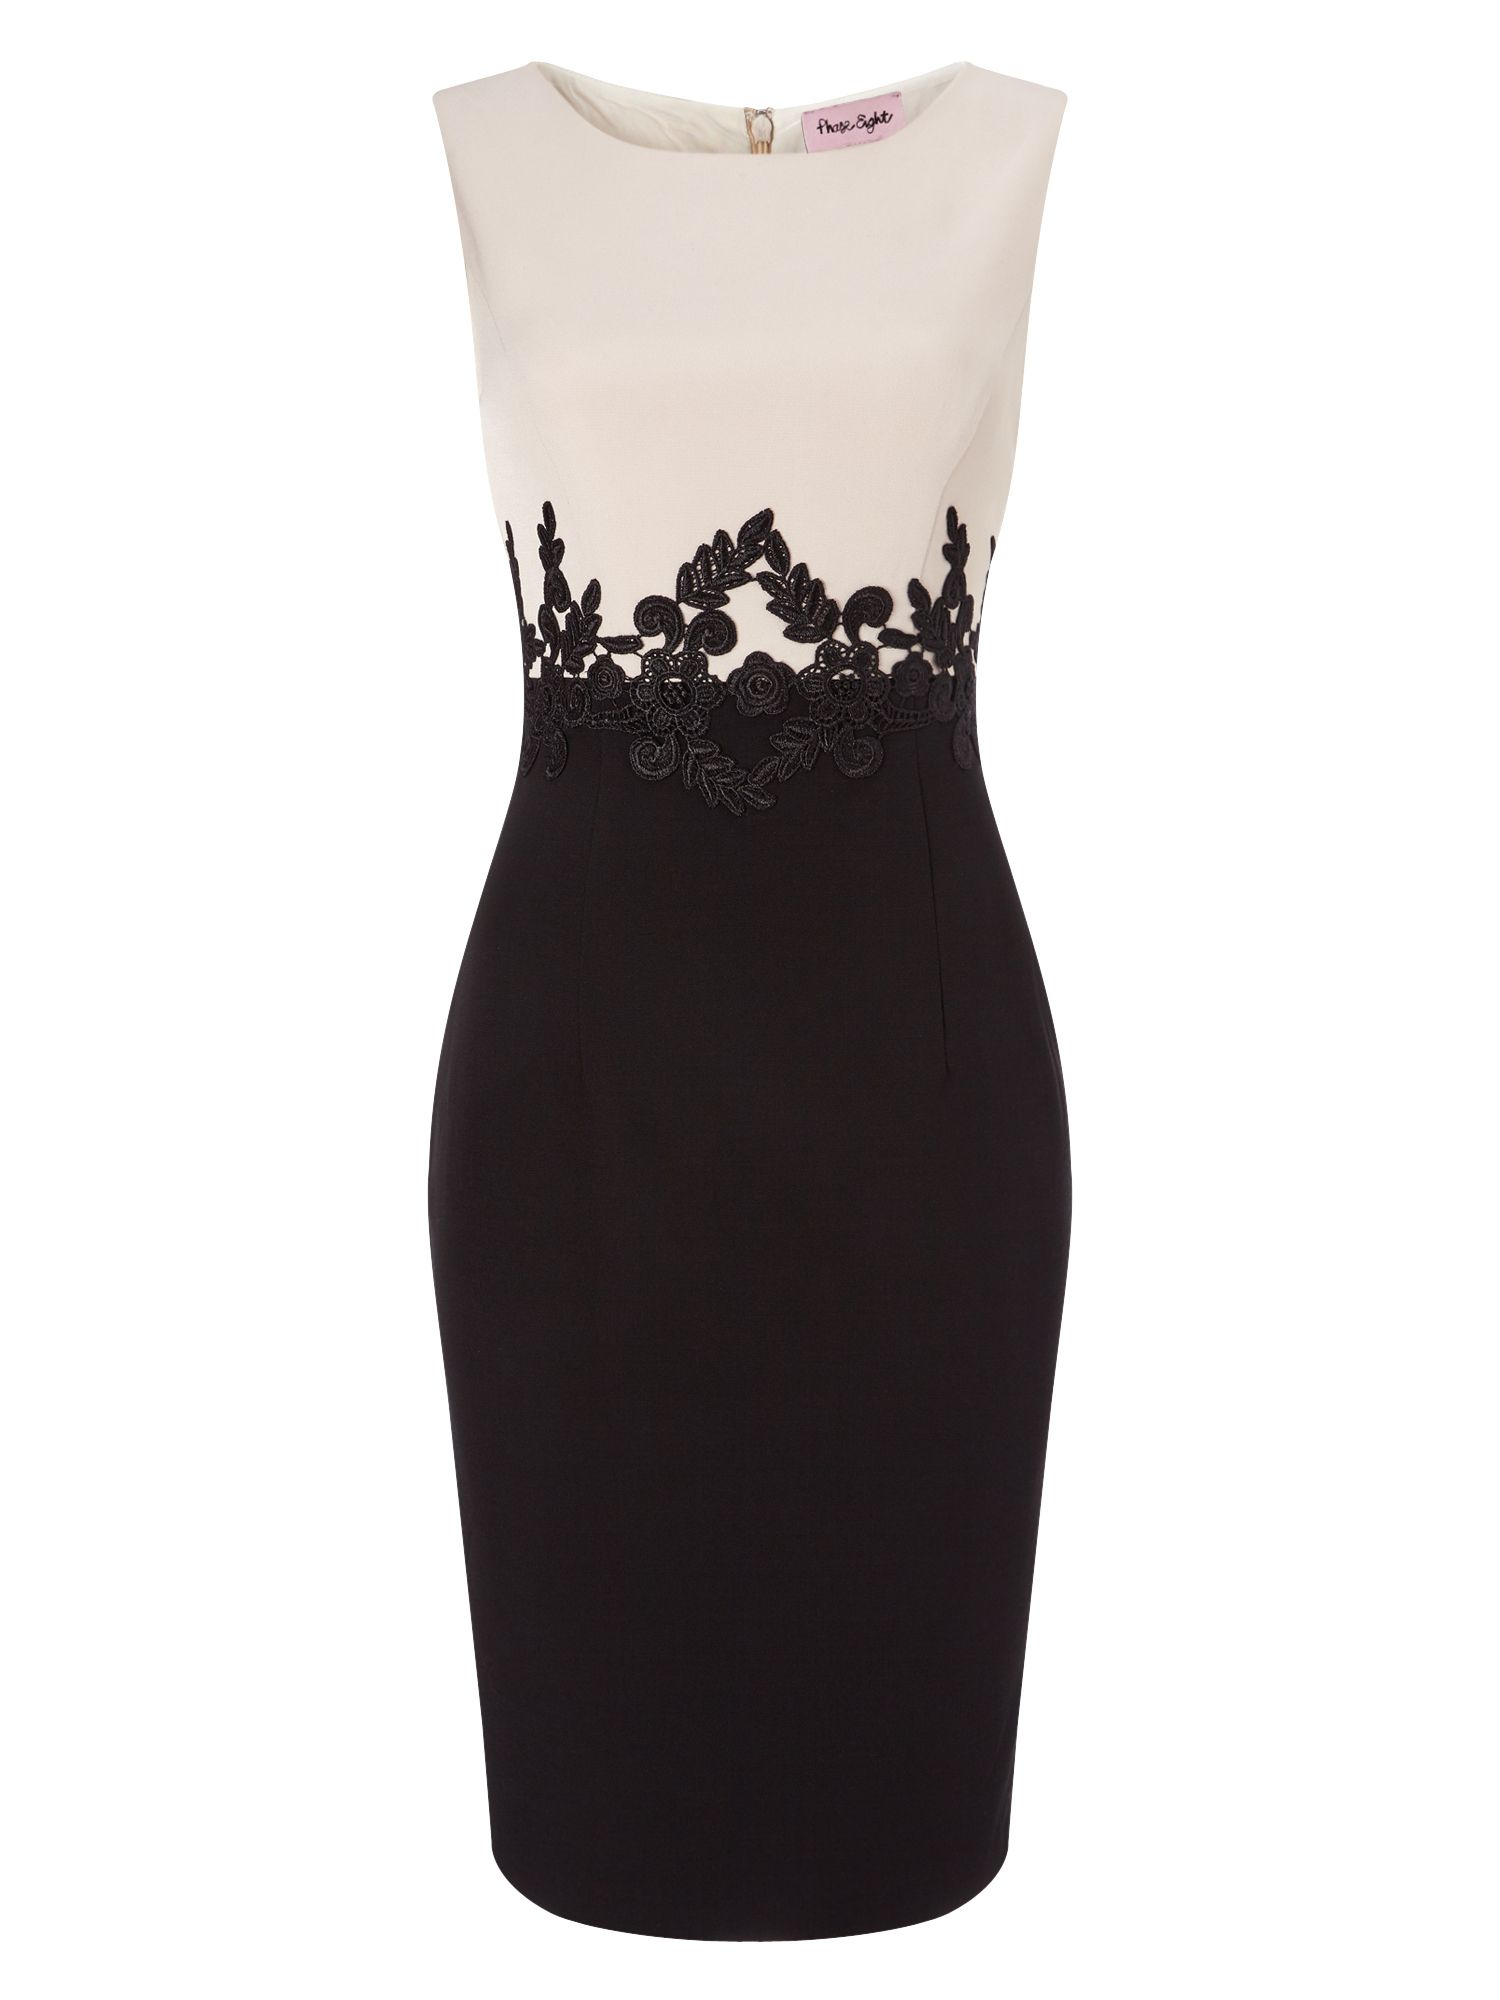 Black cocktail dresses house of fraser dress online uk for Housse of fraser